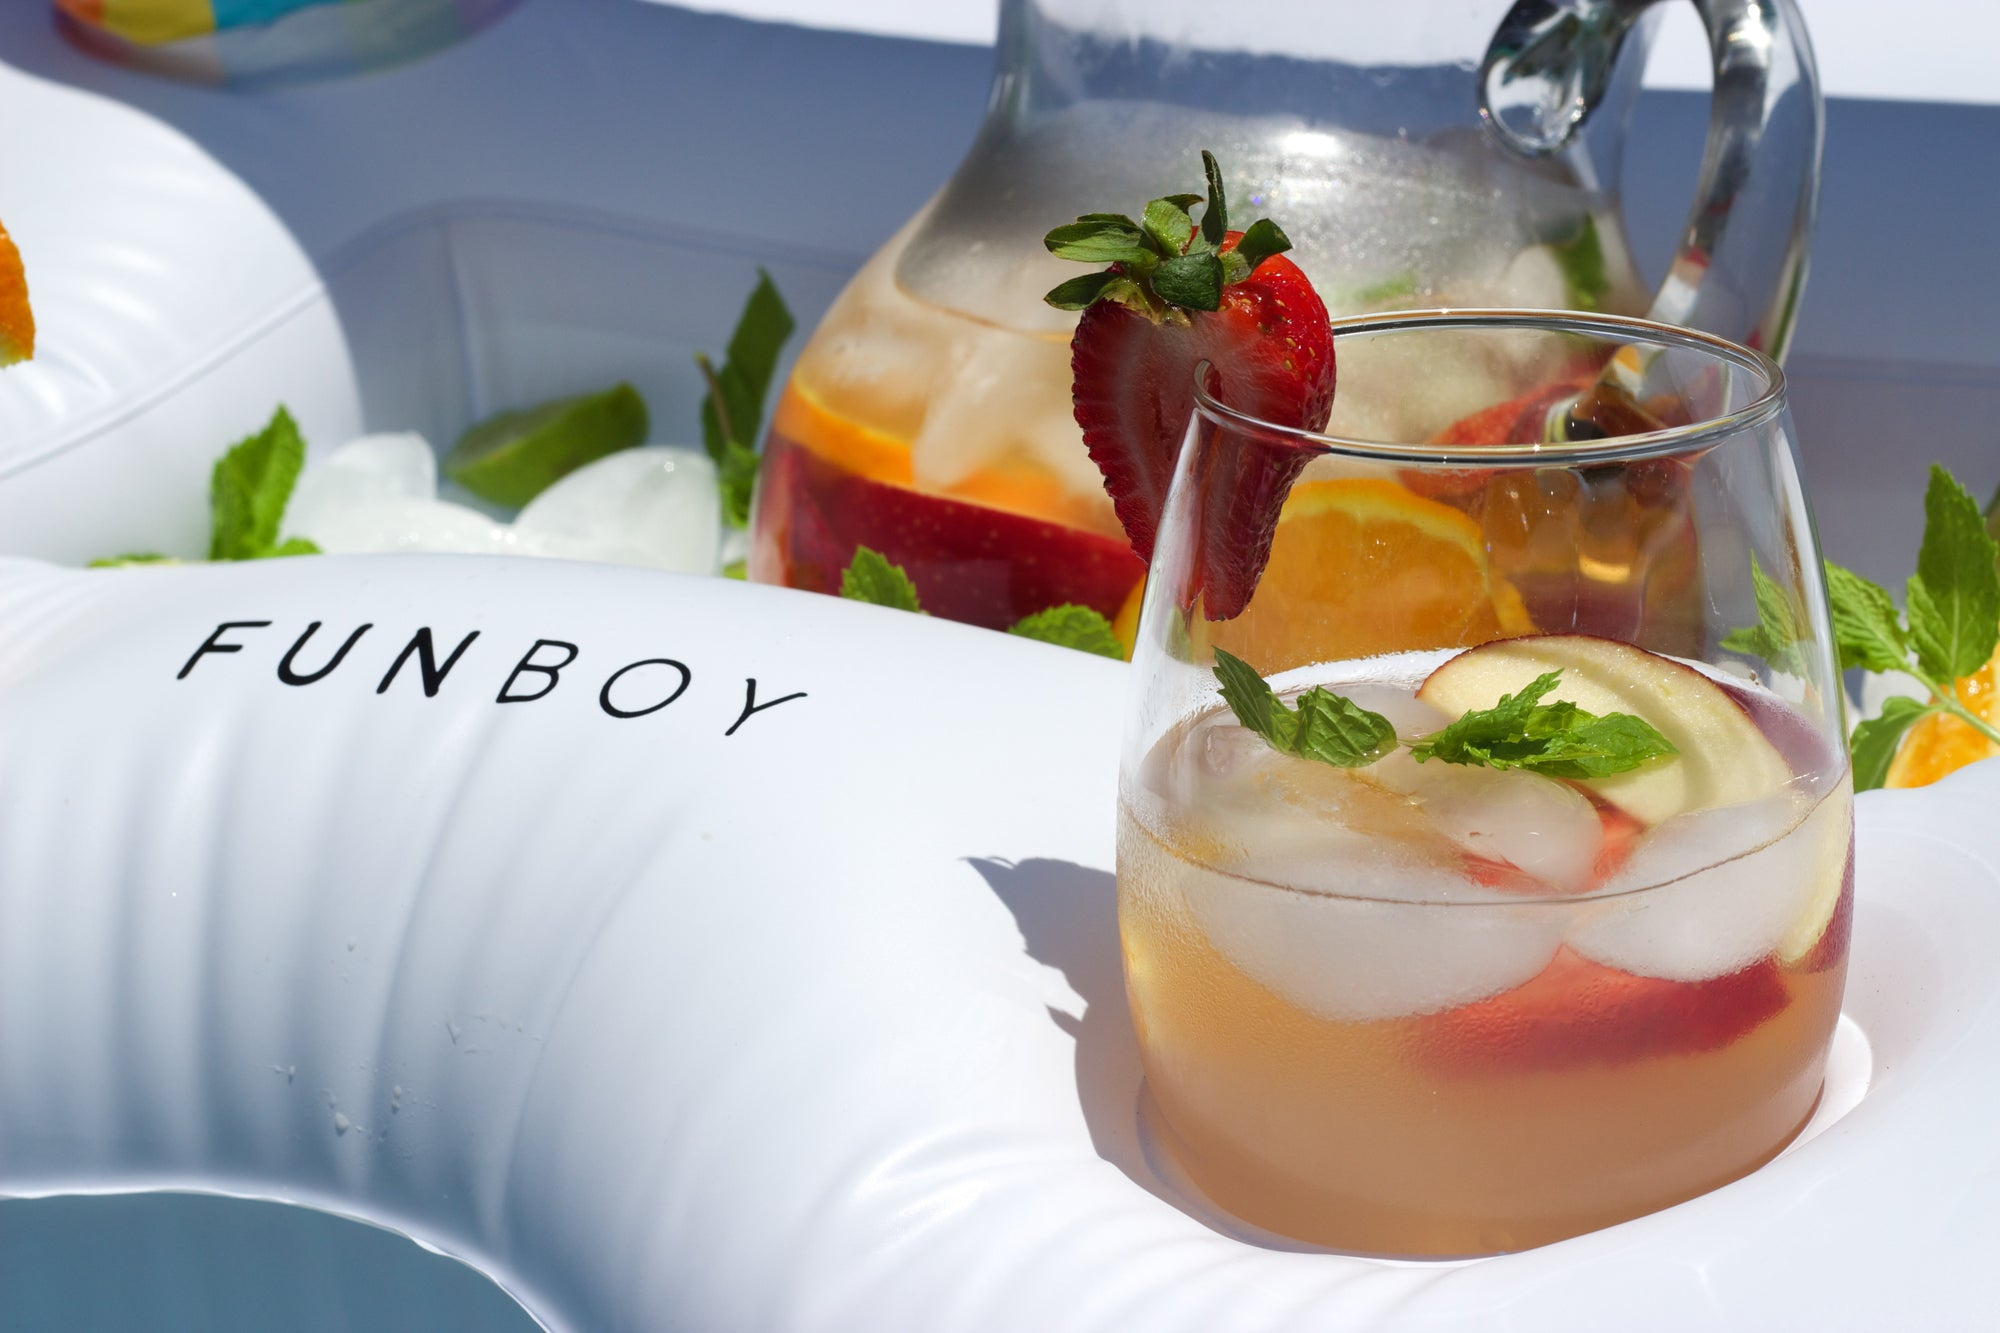 Perfect summer cocktails to float in every FUNBOY